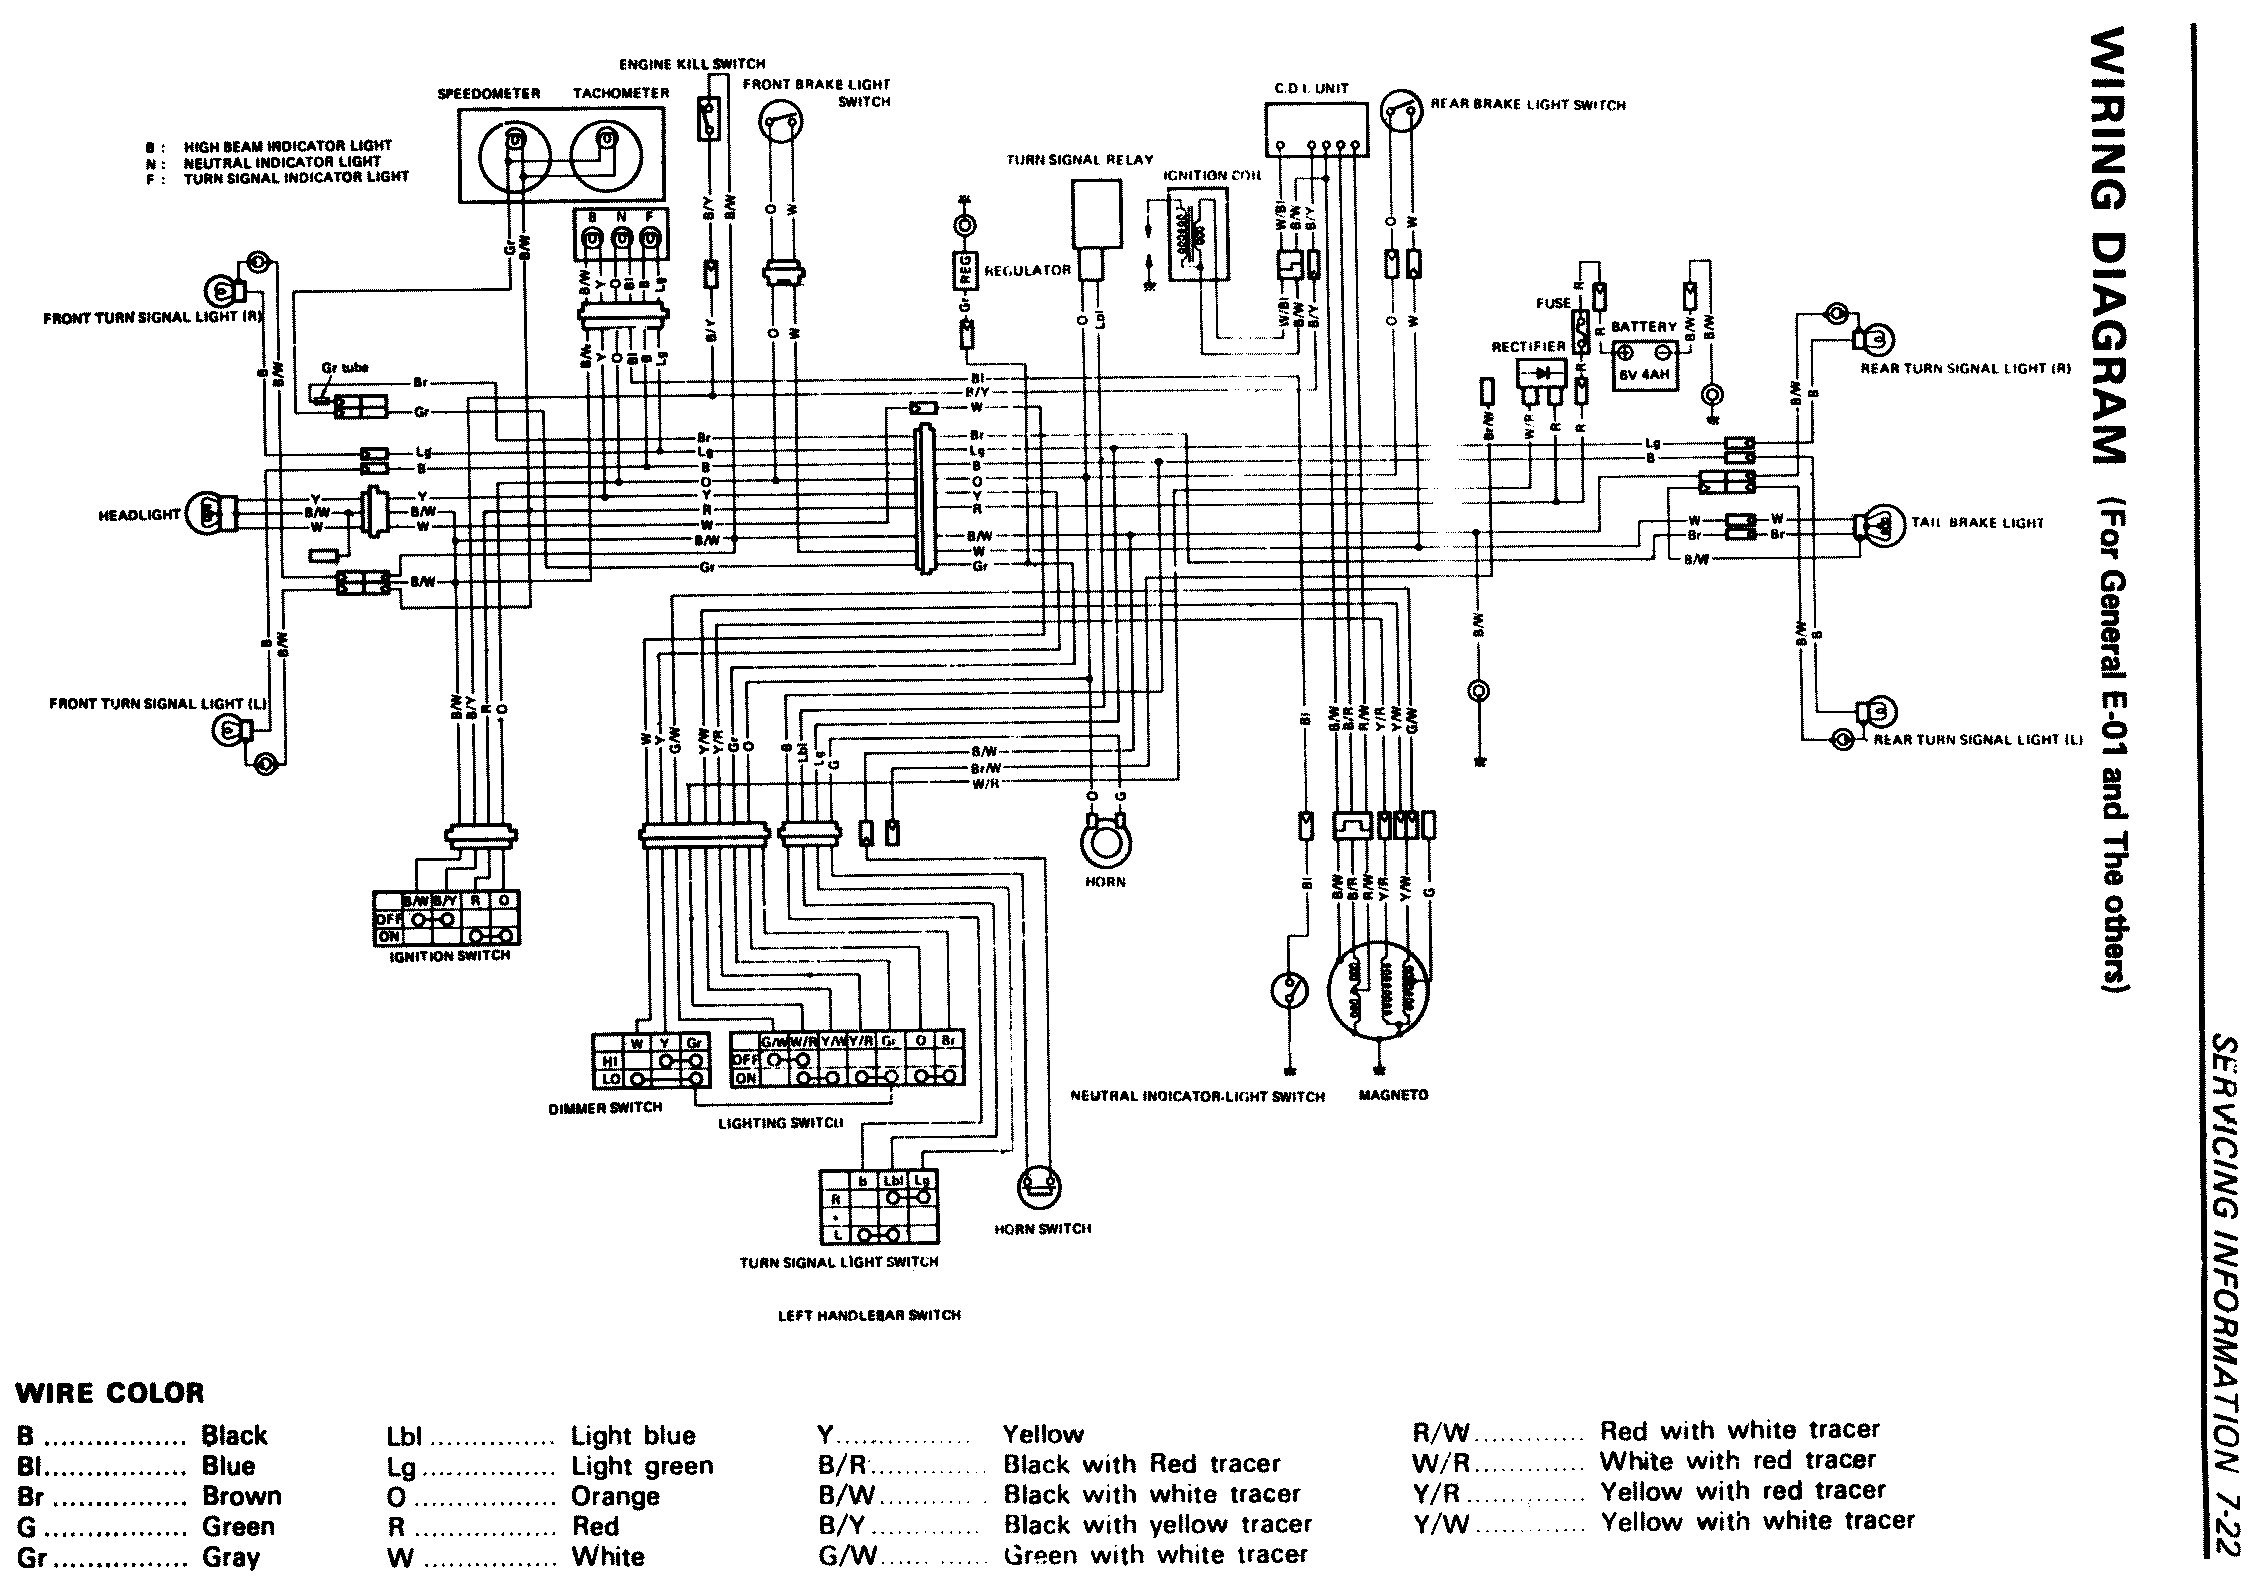 Honda Xl 600 Lm Wiring Diagram